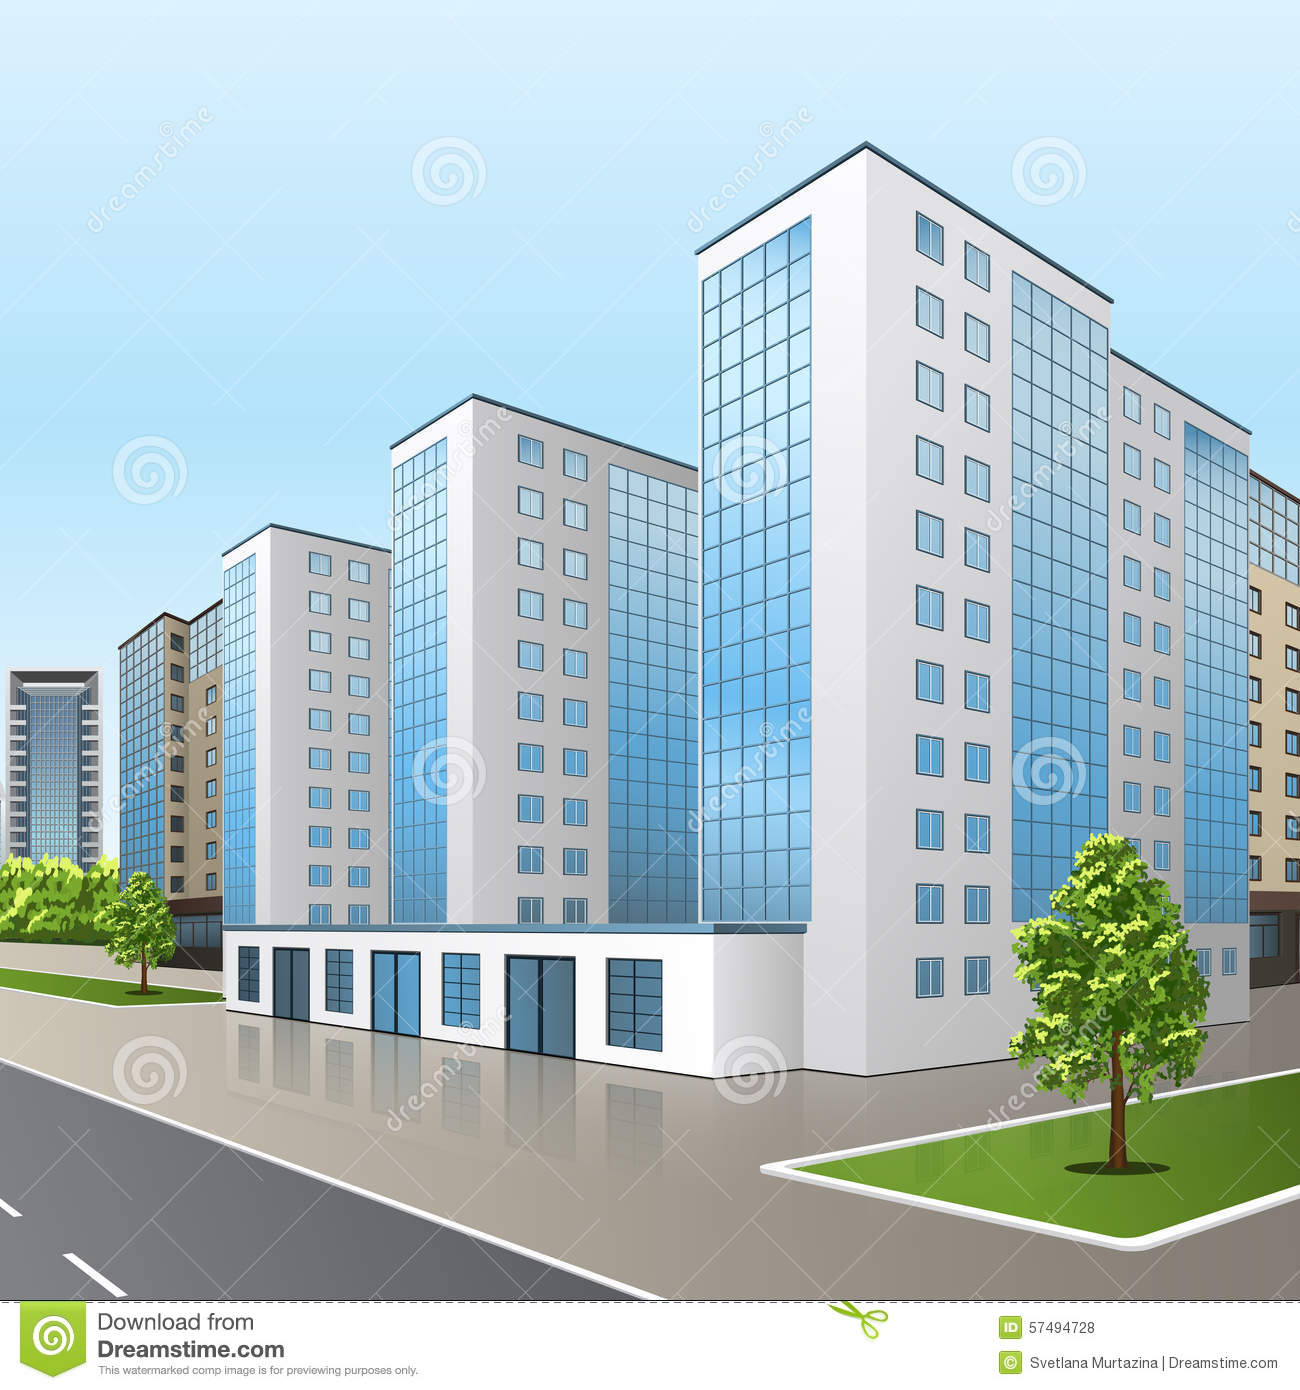 Office Building With An Entrance And Reflection Stock Vector.